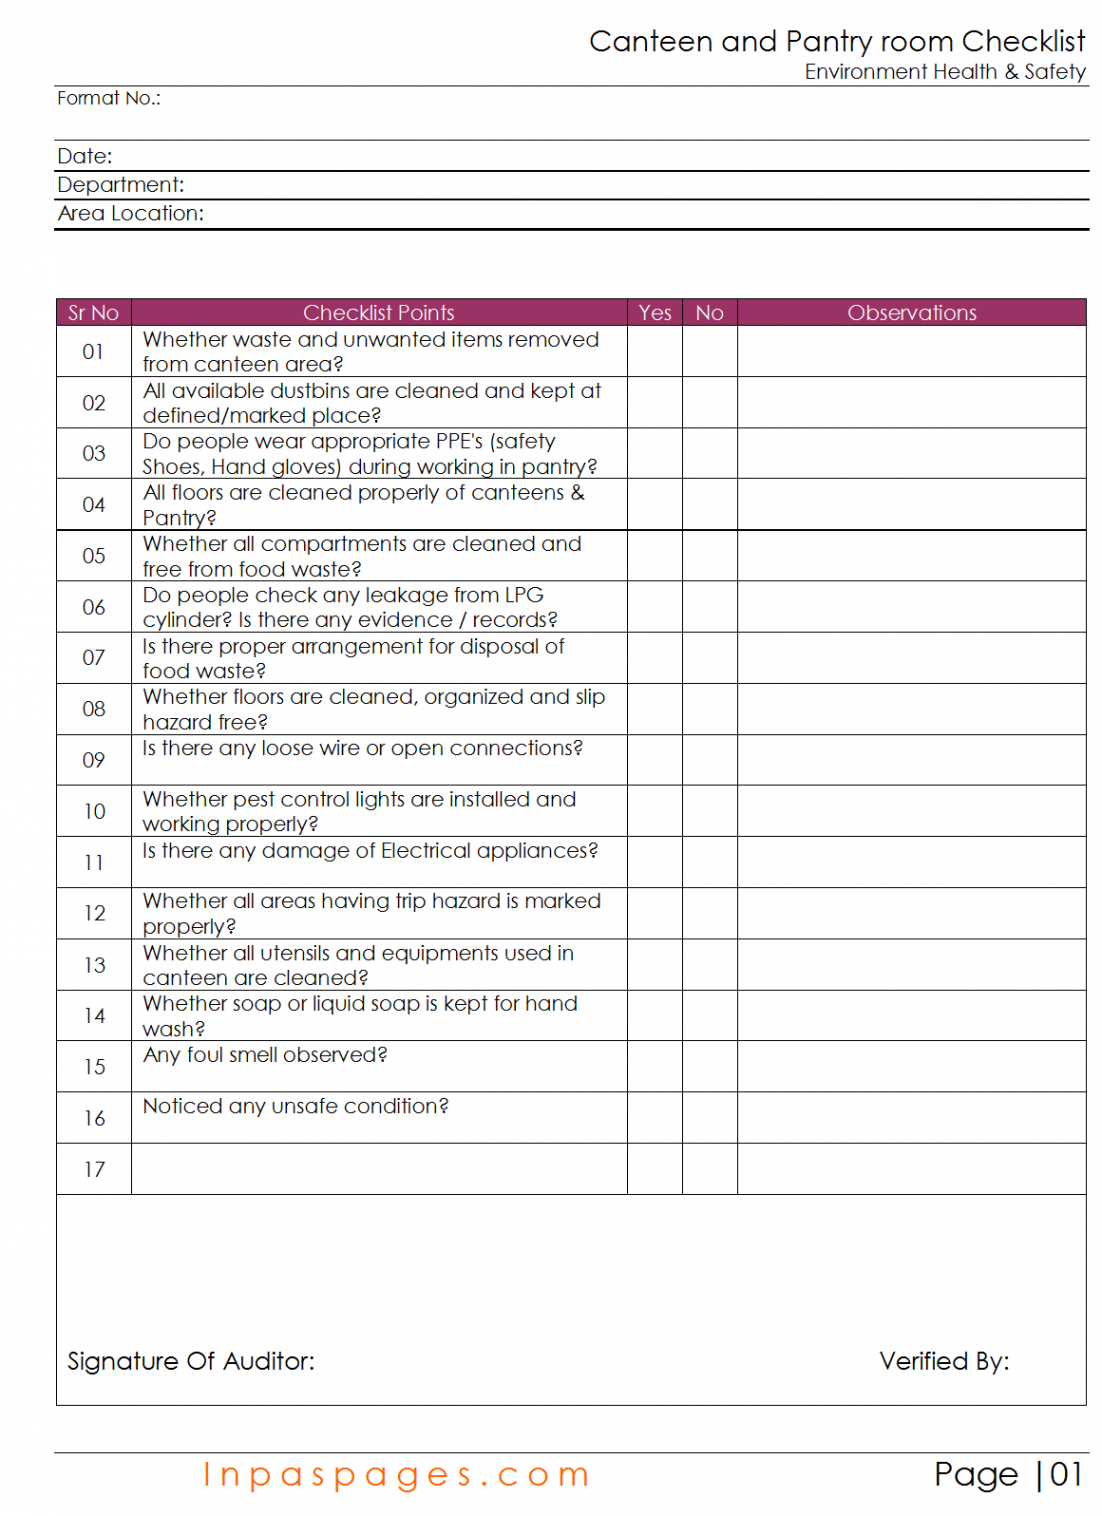 sample canteen and pantry room checklist food safety audit checklist template word